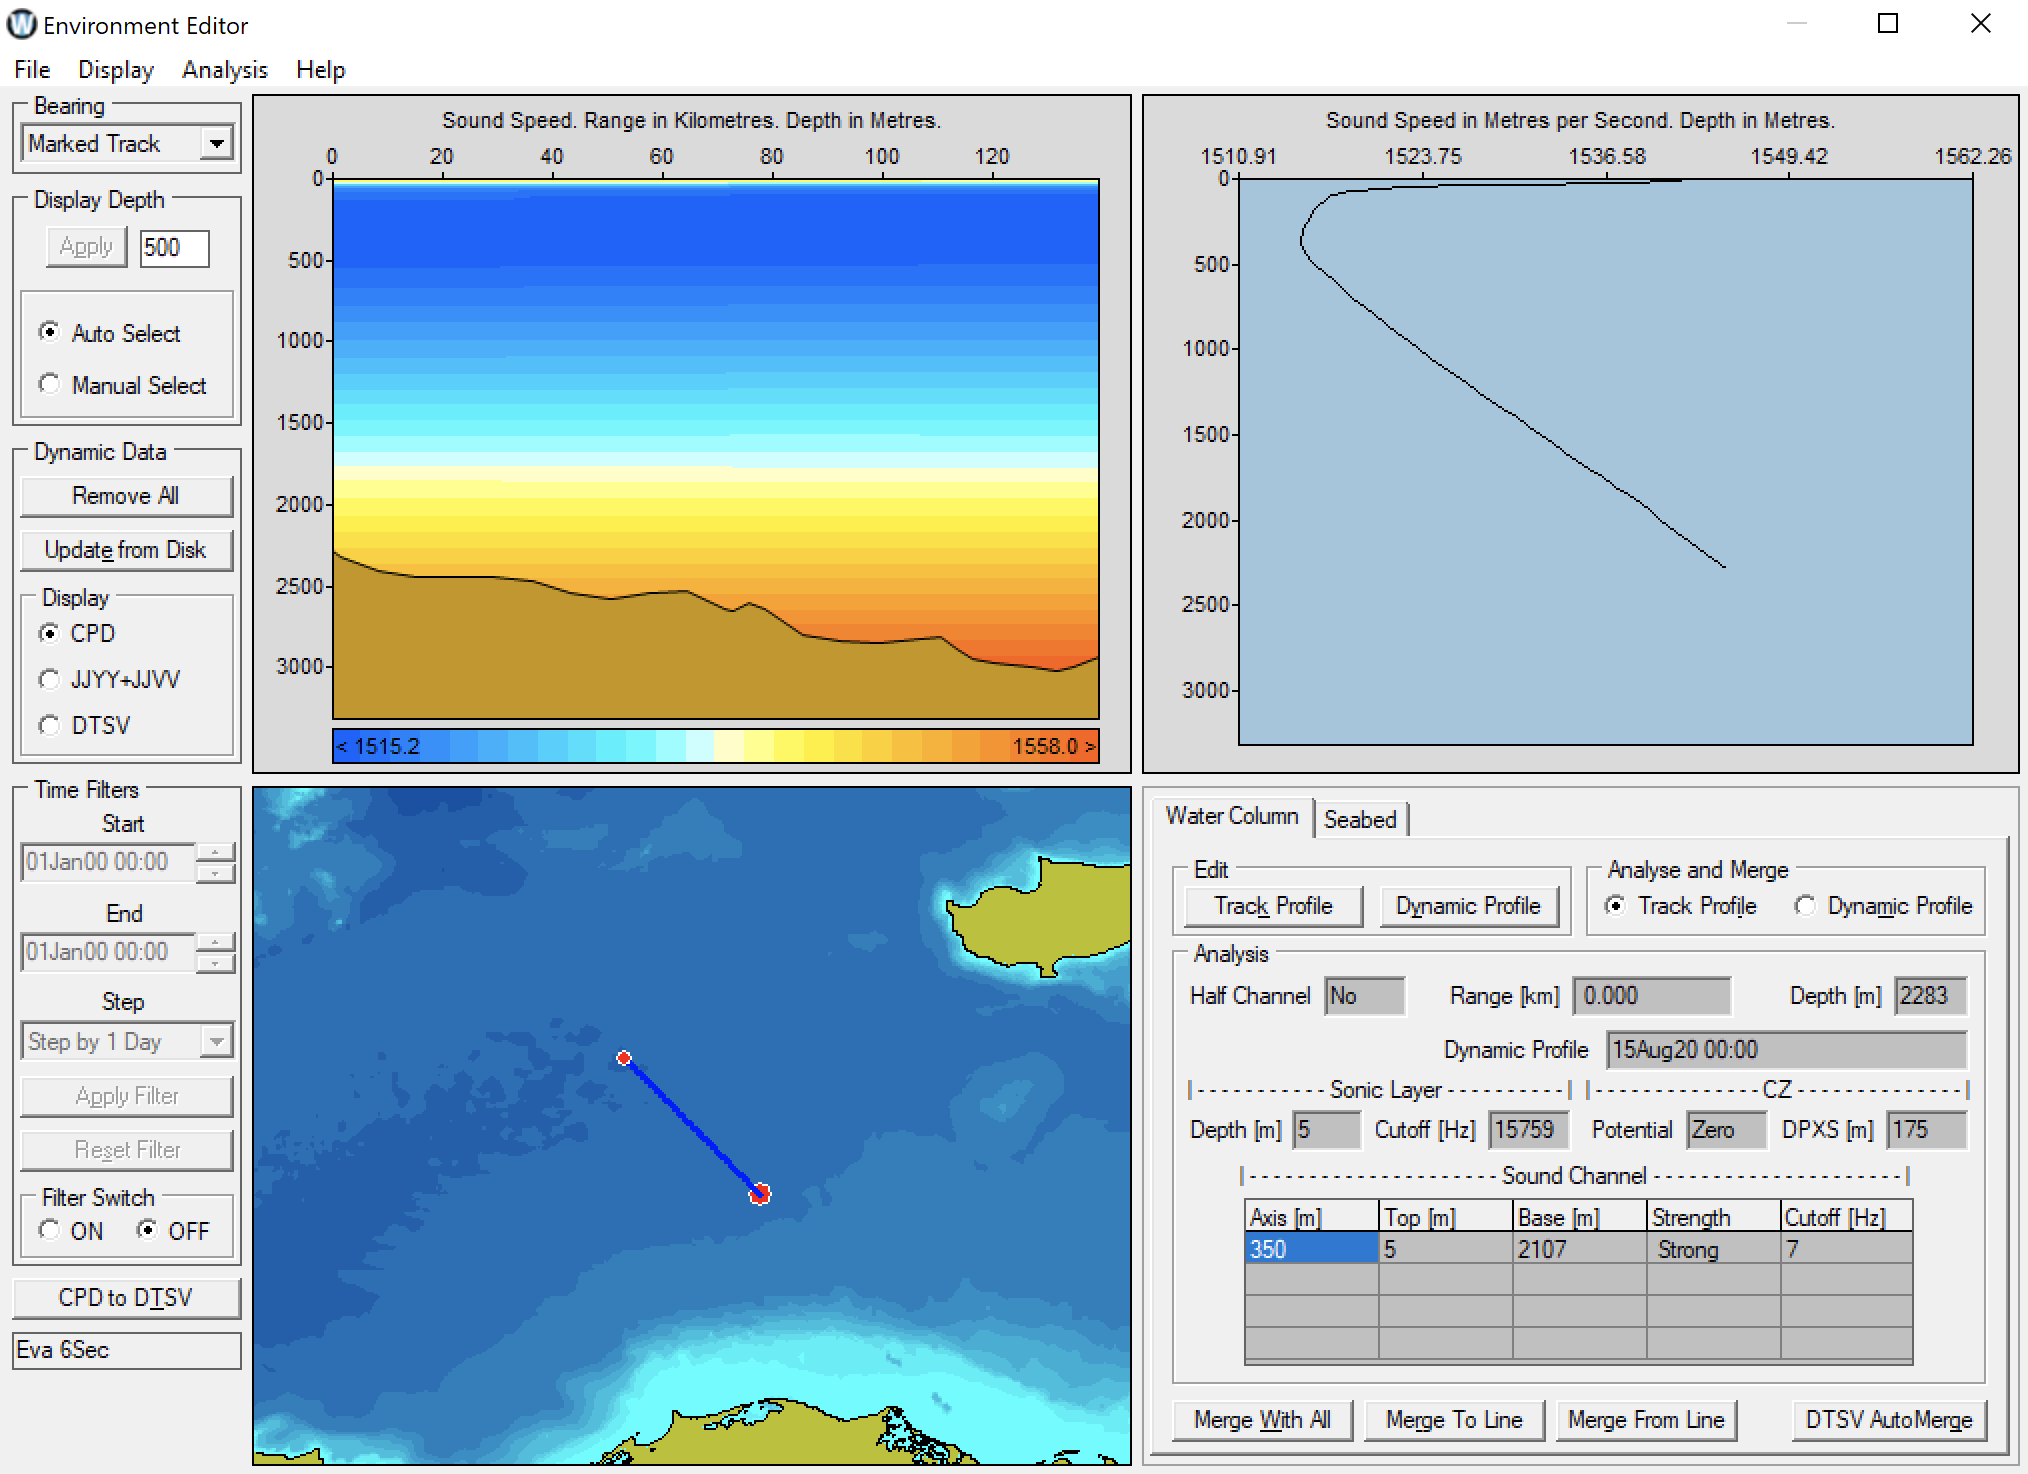 WADER Sonar Range Prediction and Global Ocean Information System for underwater acoustics, sonar range predictions and ocean environment analysis